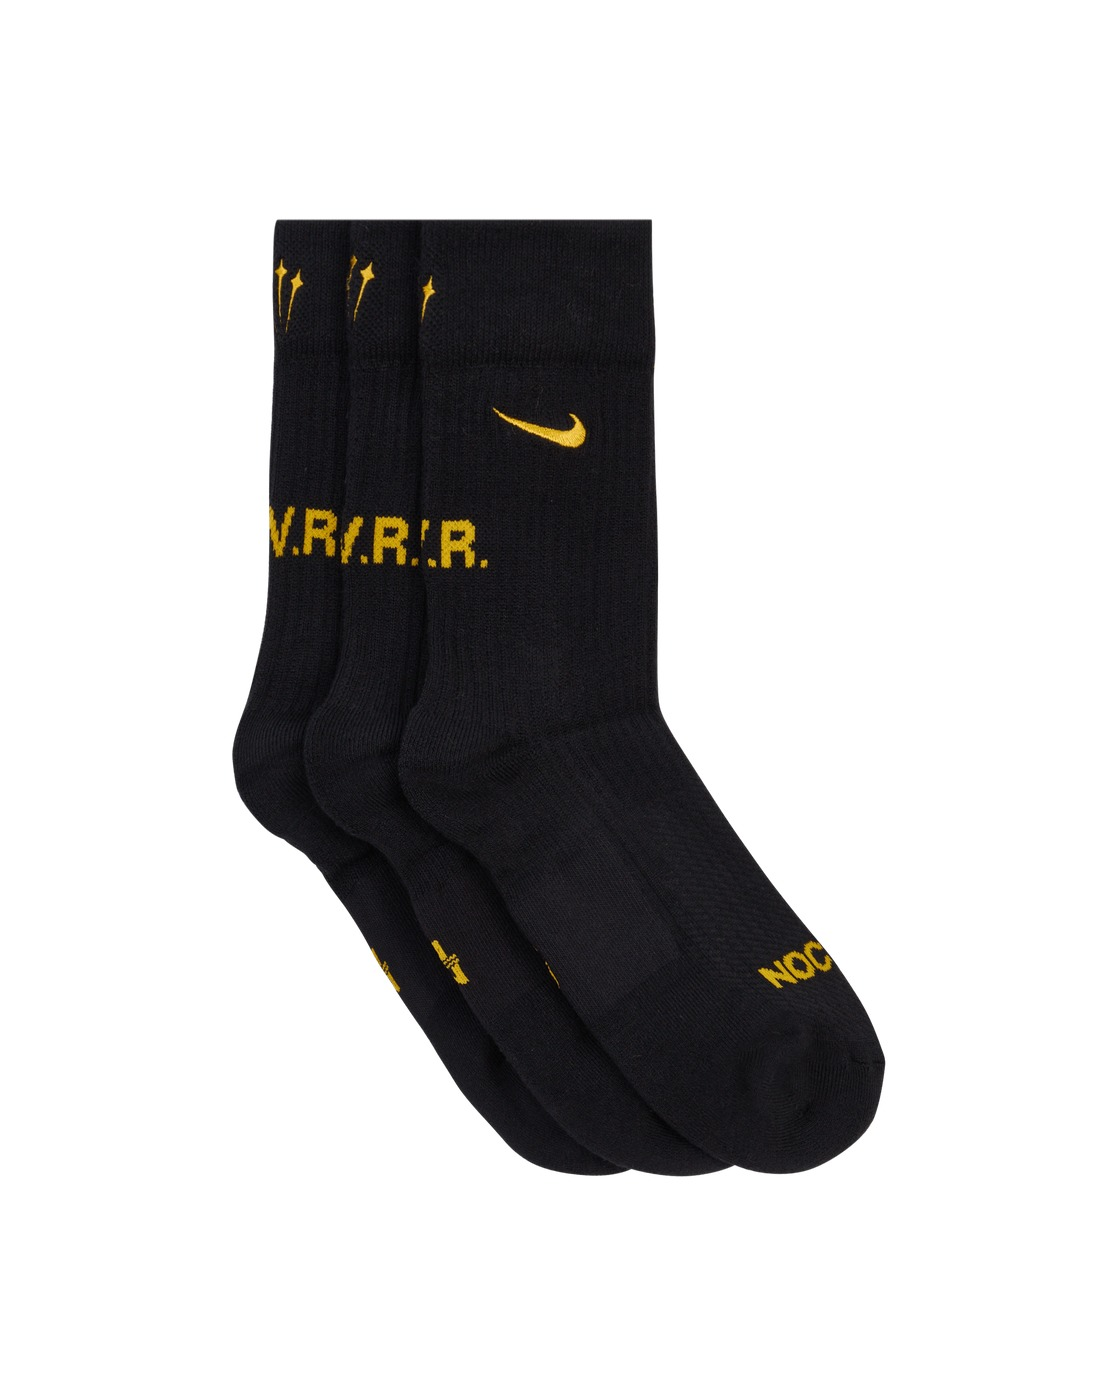 Nike Special Project Nocta Socks Black/University Gold